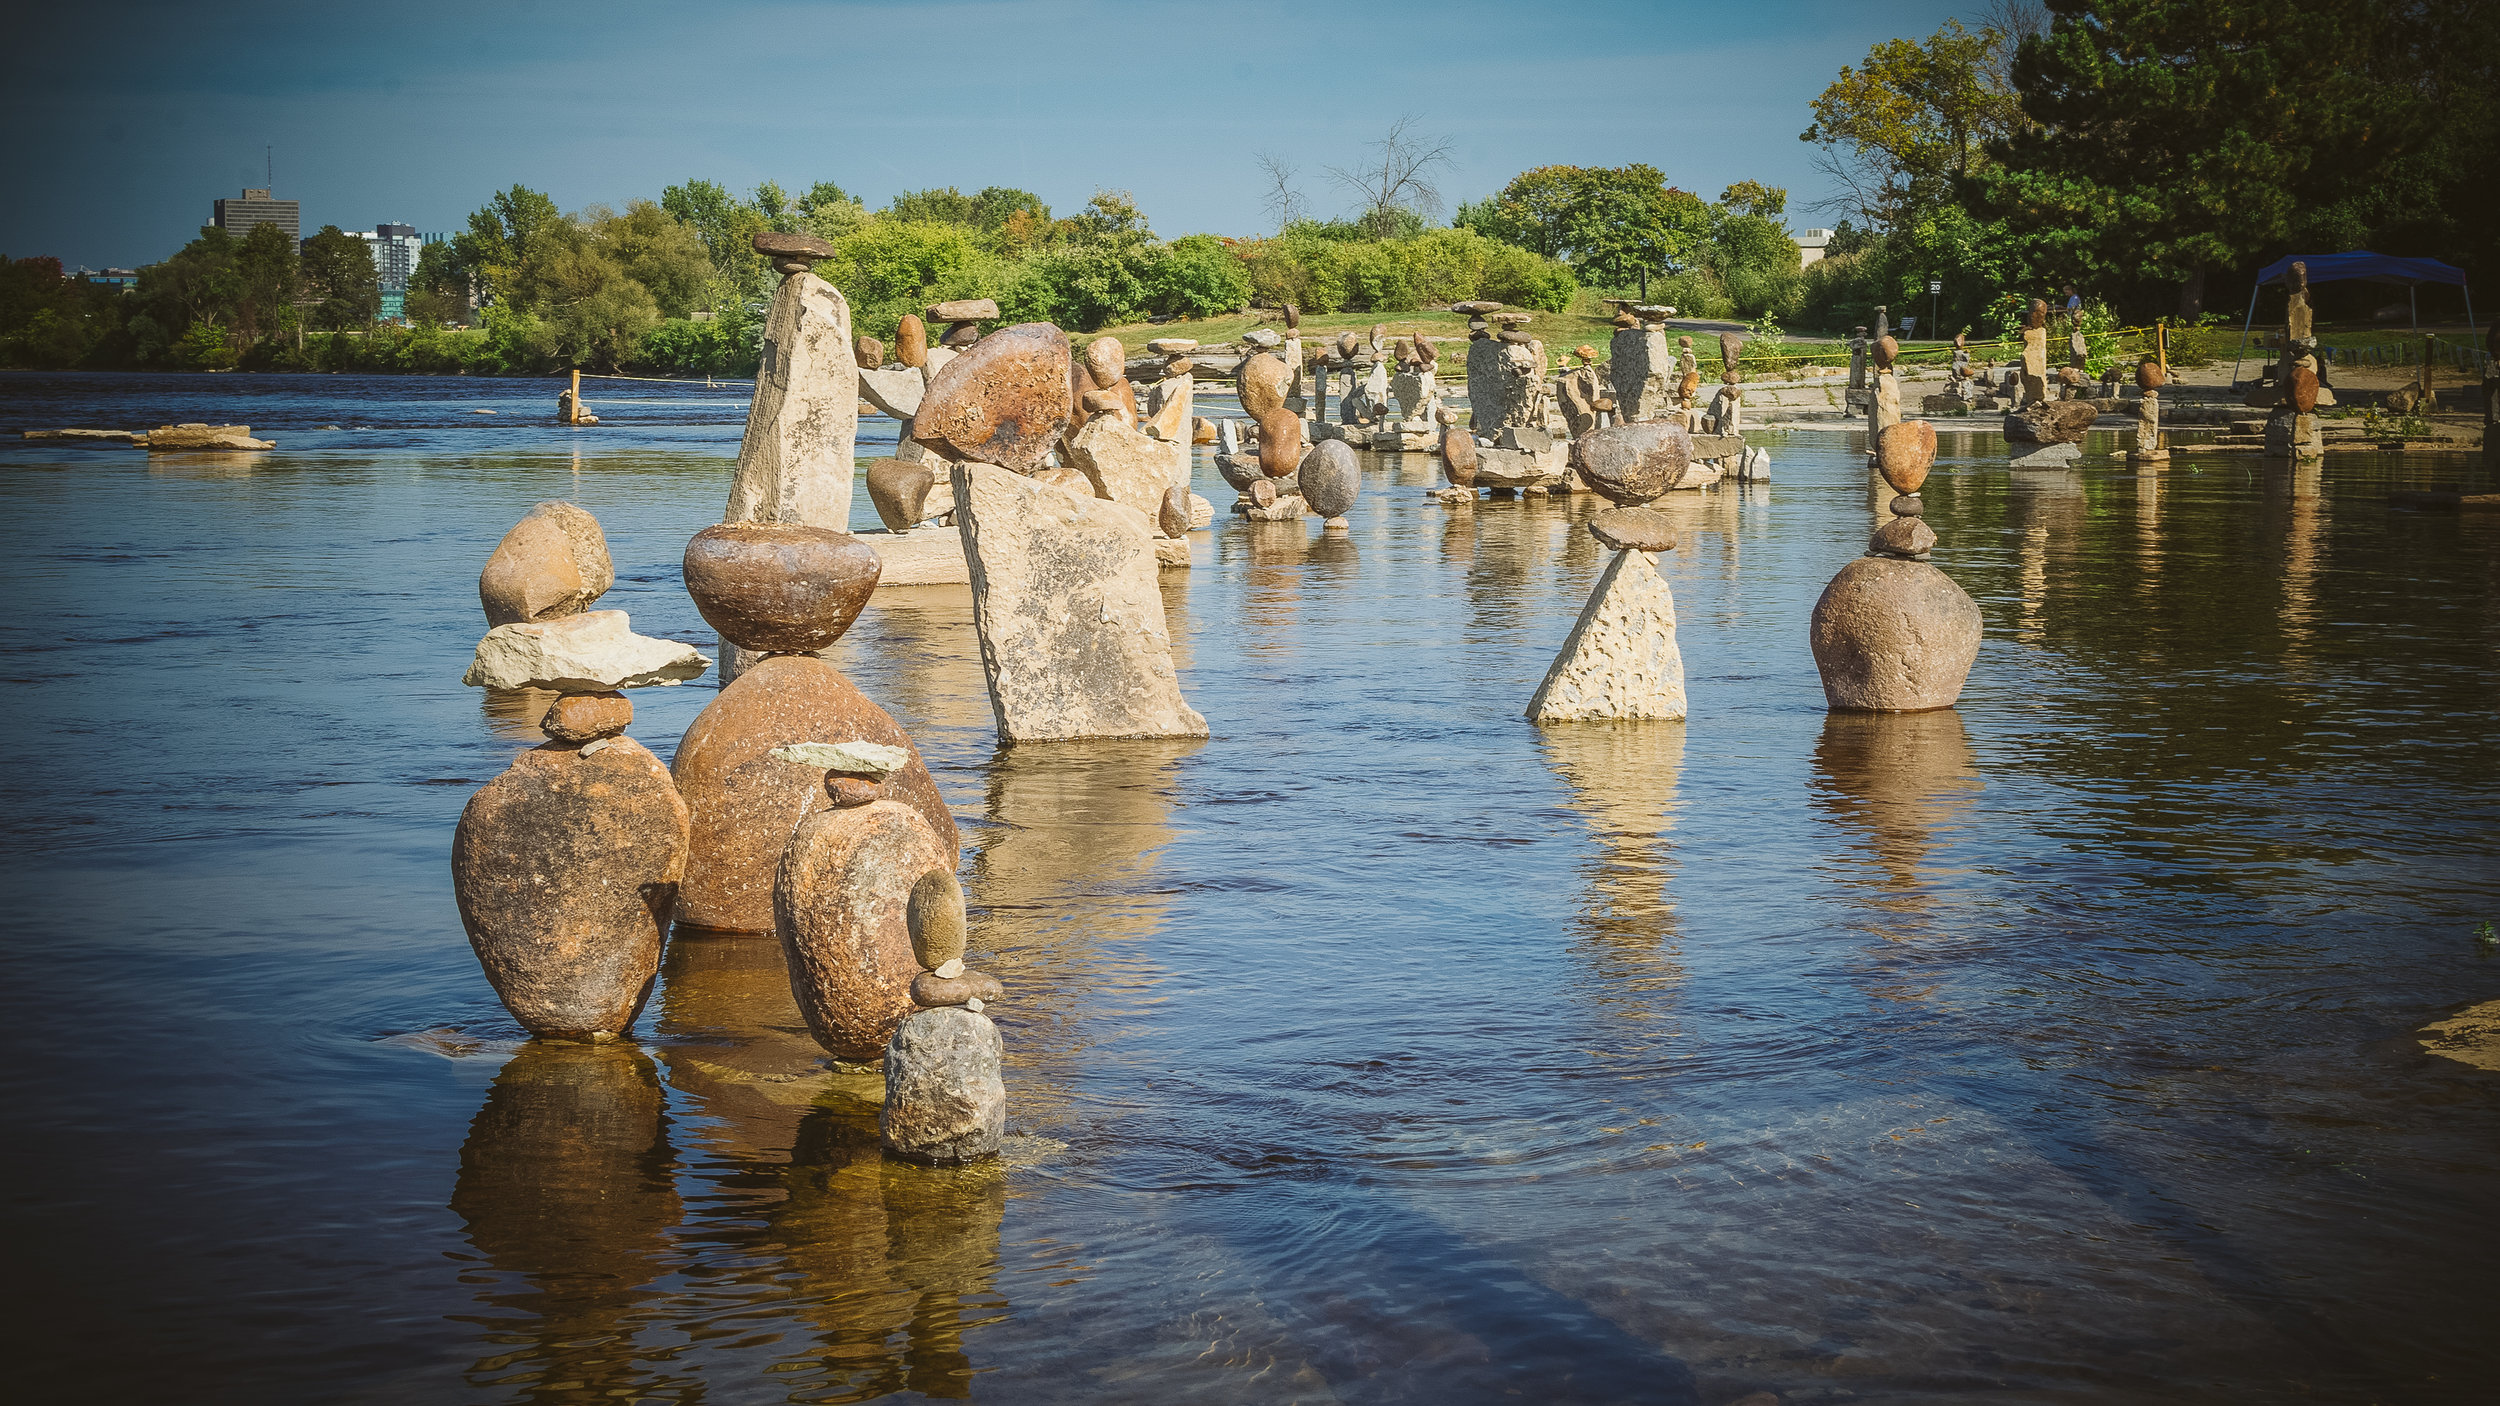 Back on the more anglo side of the Ottawa River, we made a quick stop at Remic Rapids to see the balancing rocks.